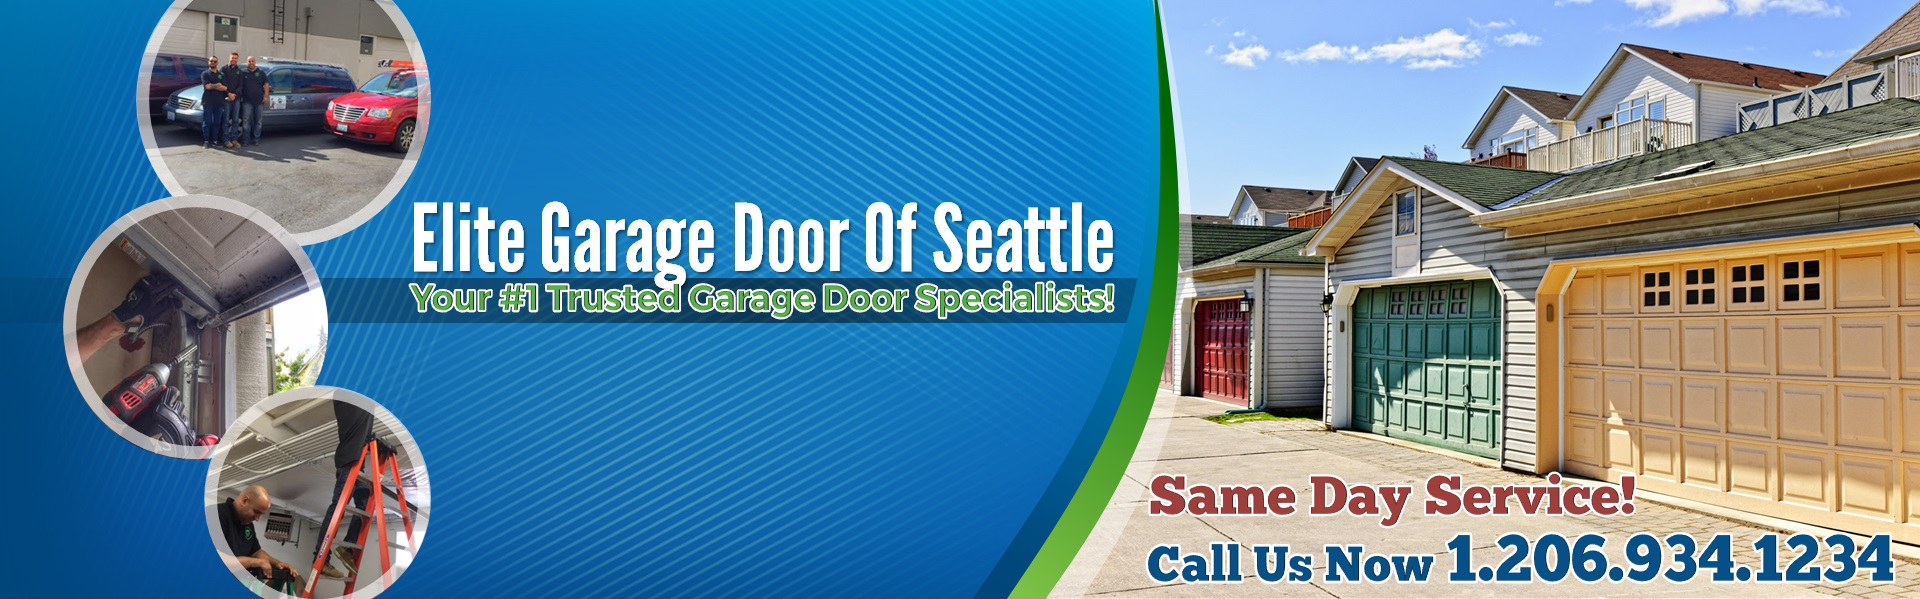 Garage door questions answers elite garage door gate for Garage door repair duvall wa